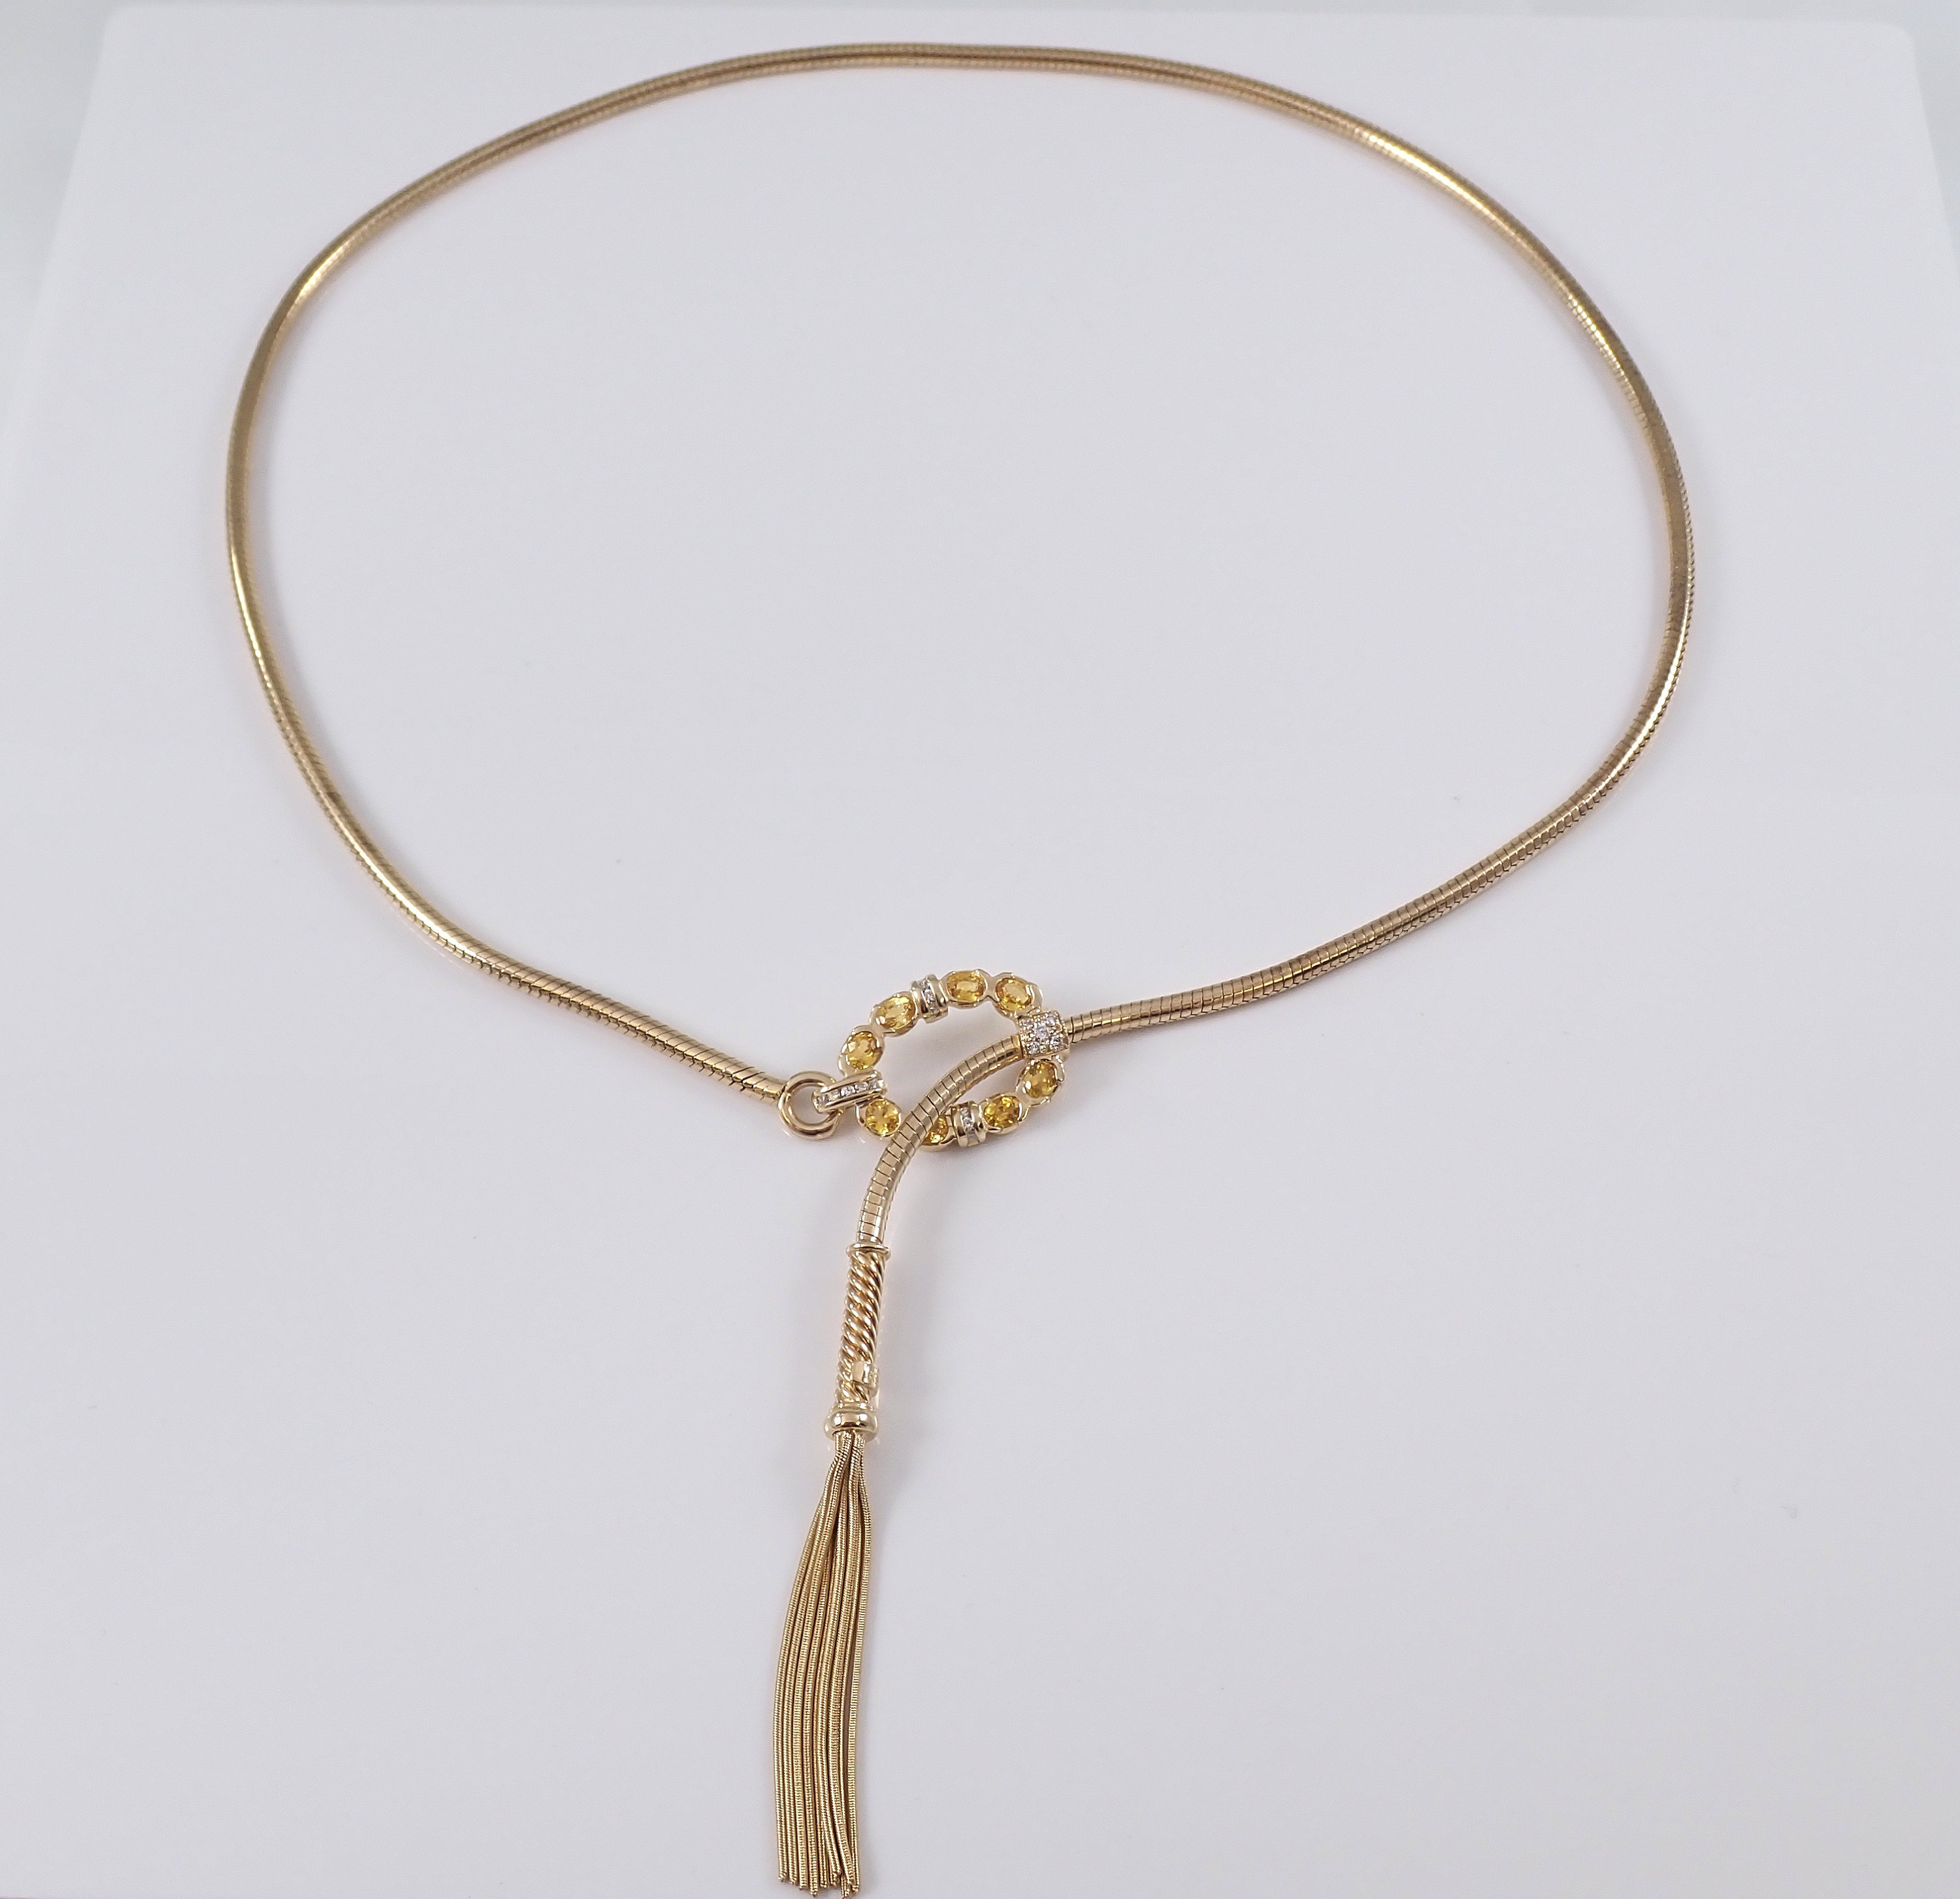 Vintage Diamond And Yellow Sapphire Lariat Tassel With Regard To Most Recently Released Lariat Sapphire And Diamond Necklaces (View 25 of 25)